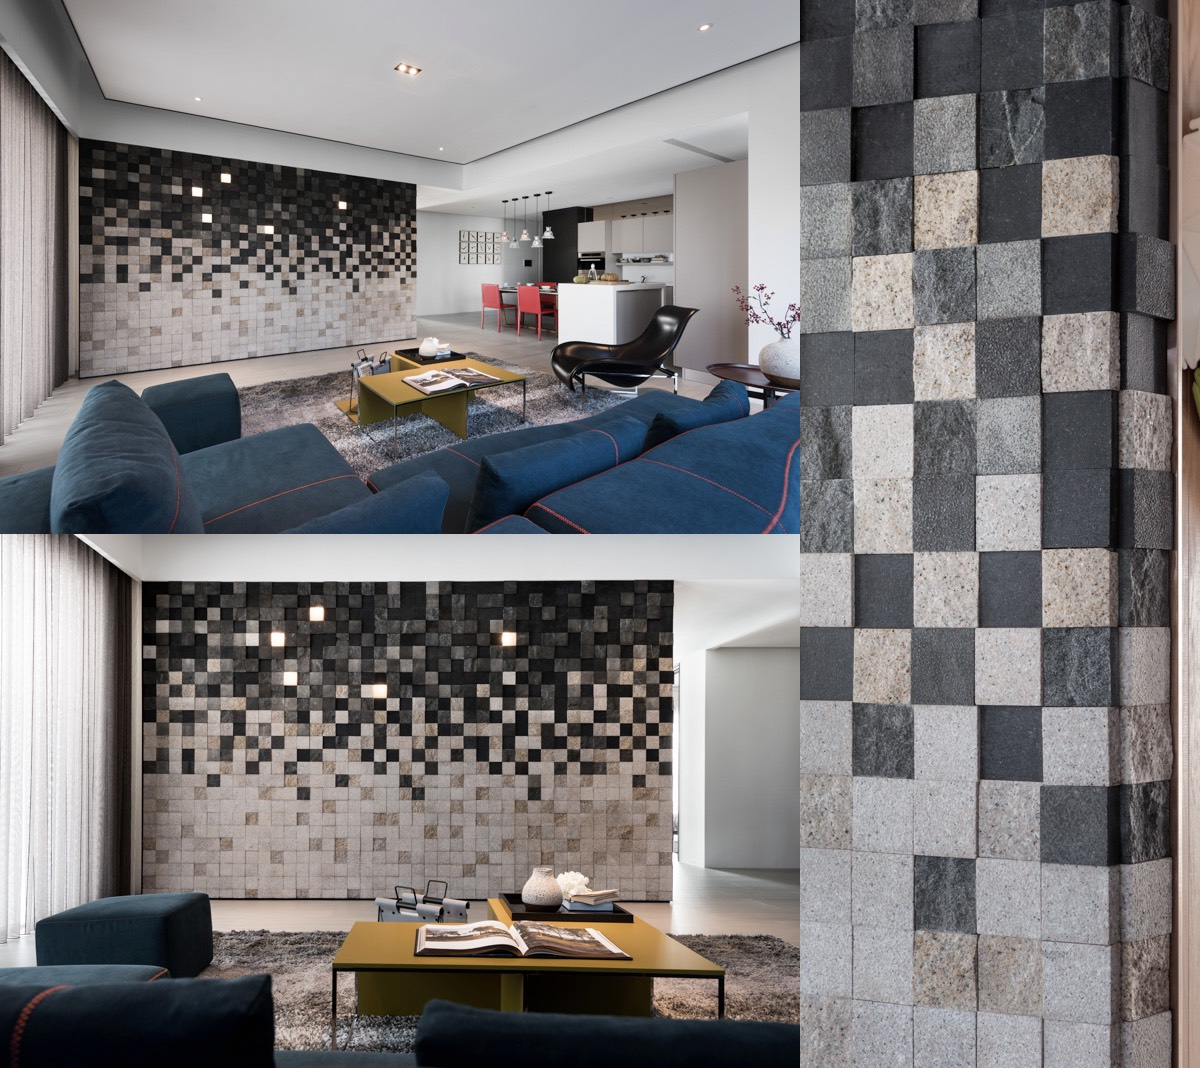 Wall Tiles Designs For Living Room Wall Texture Designs For The Living Room Ideas And Inspiration